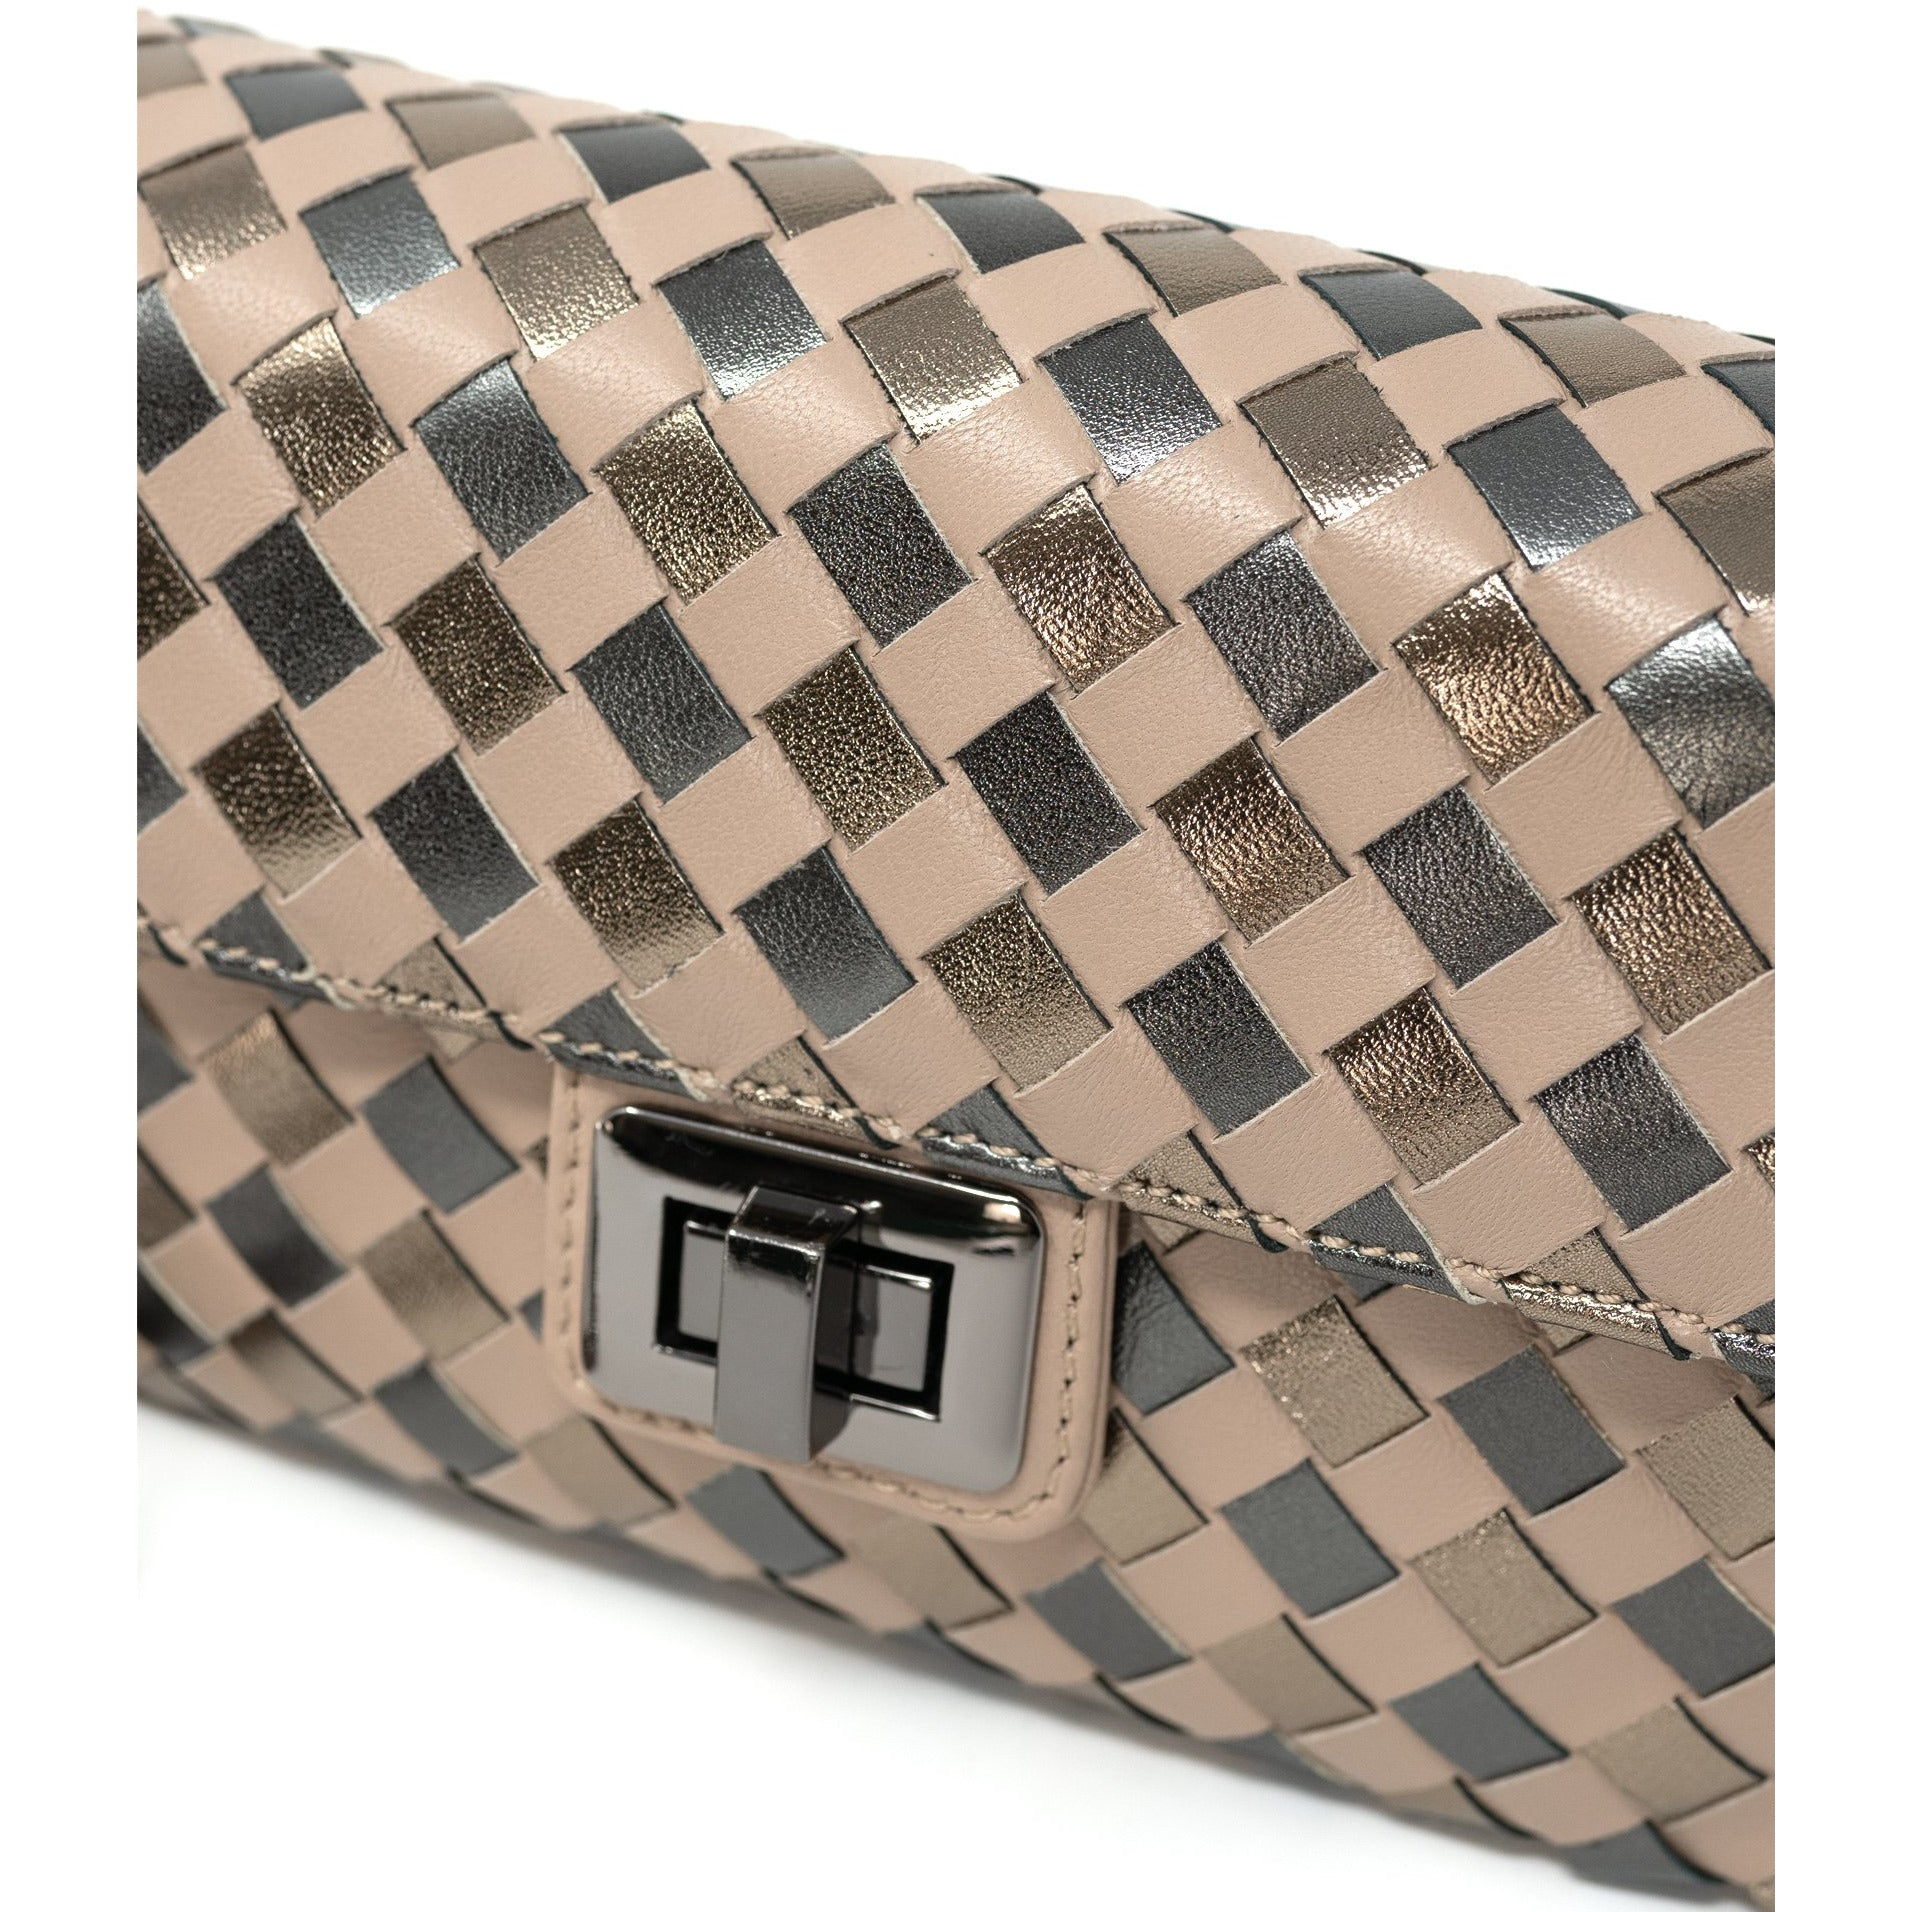 ART Chicca L Intreccio Quadro Leather Clutch - Jennifer Tattanelli